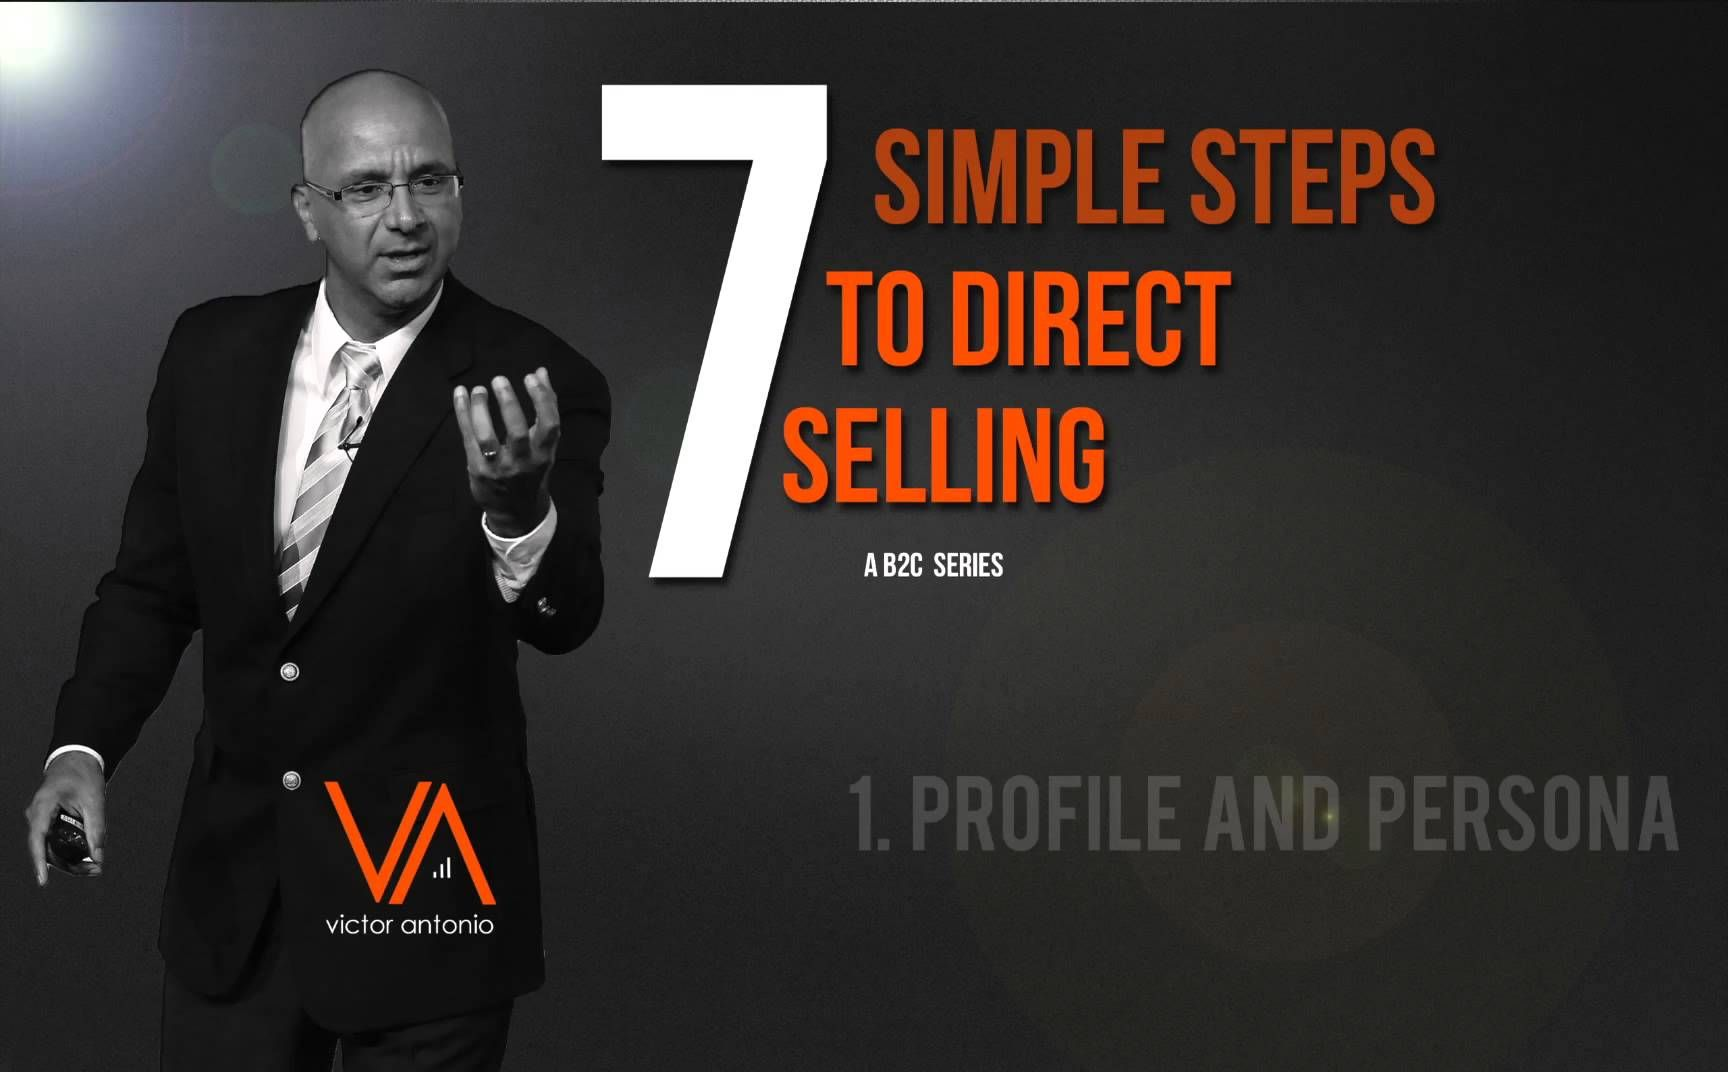 Direct Selling - Profile Your Customer #1.  How targeting the right client will allow you to shorten your sales cycle and increase your chances of closing the sale. #directselling #mlm #networkmarketing #salestips #howtosell